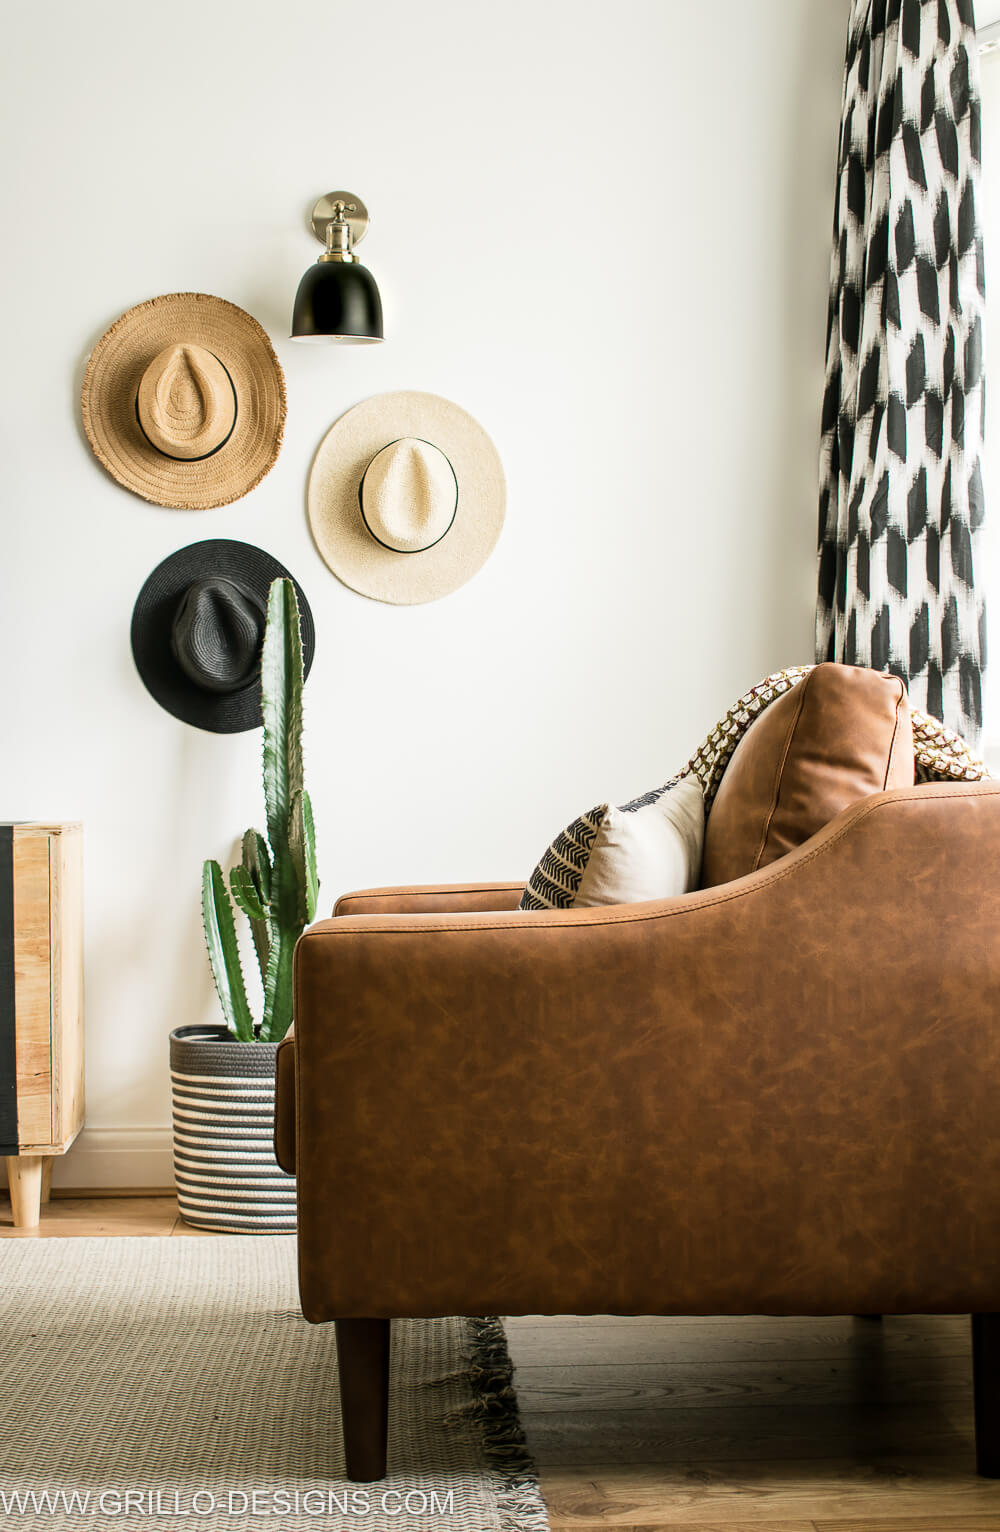 Faux leather sofa with gallery hat wall in the background